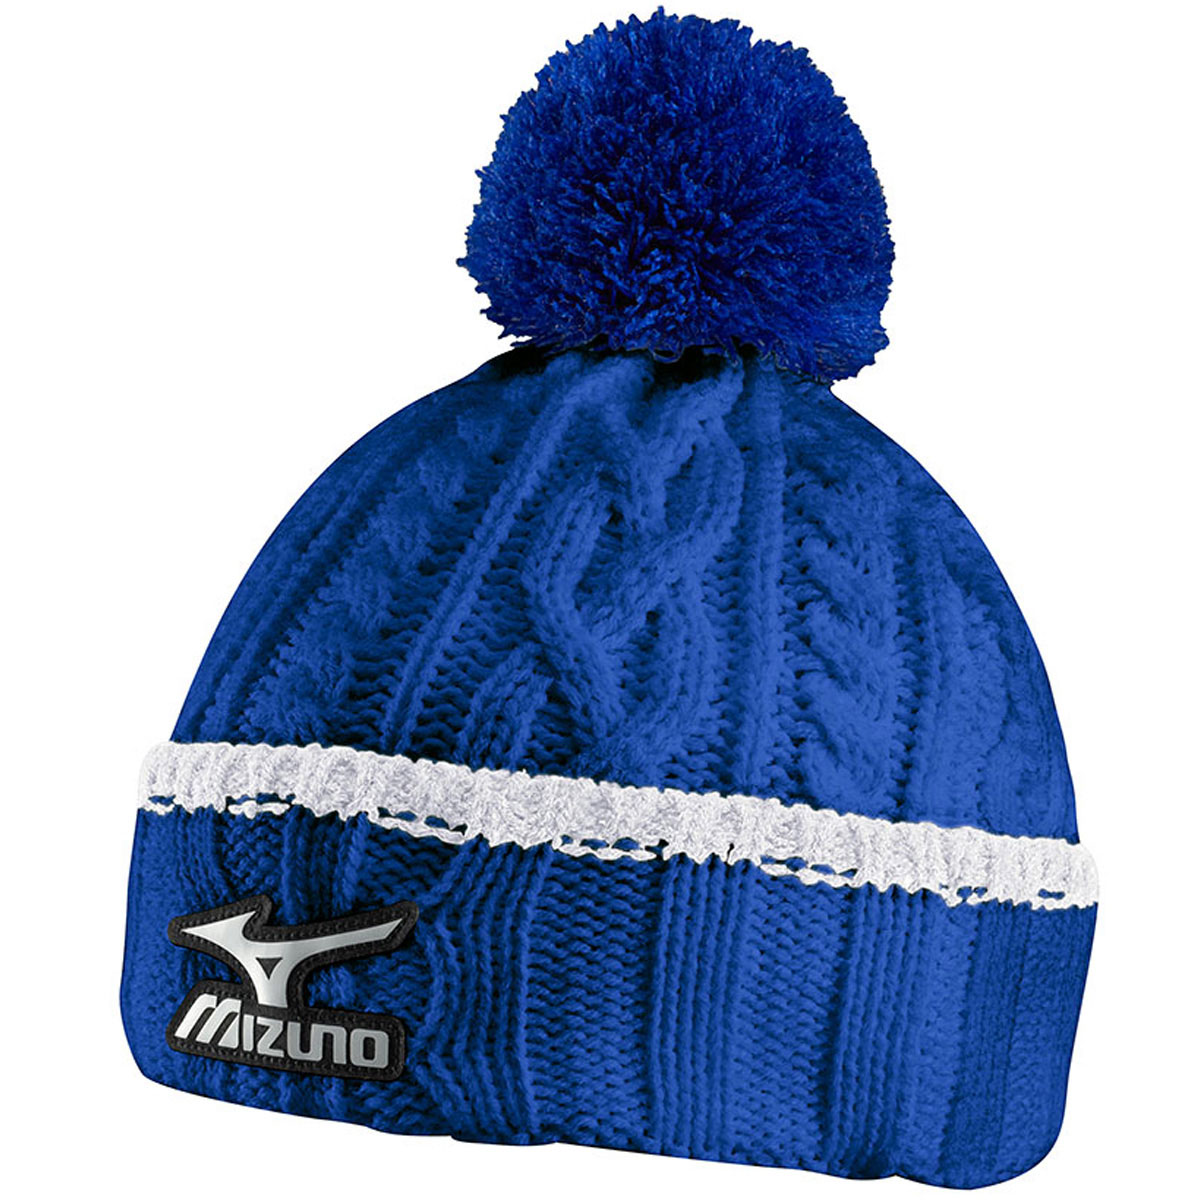 Mizuno Golf 2015 Mens Cable Knit Bobble Pom Pom Knitted ...